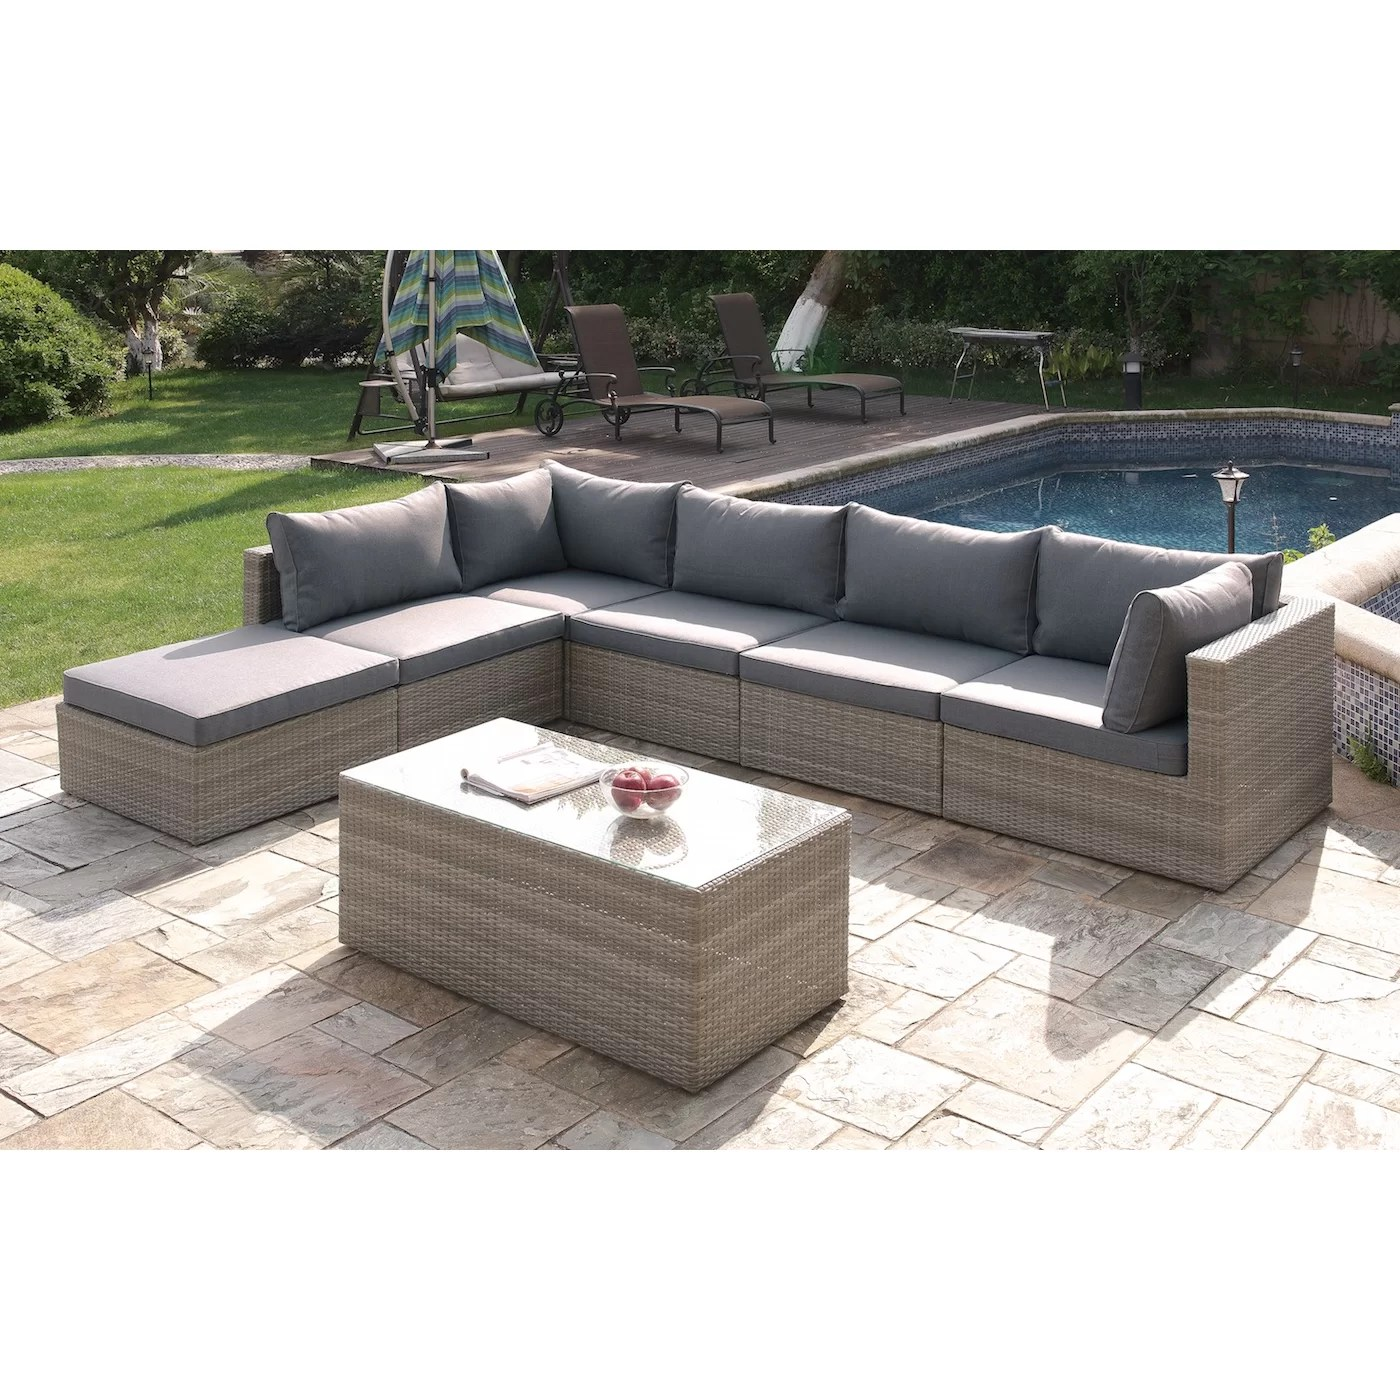 where to buy sofa in jb how fix flat leather cushions patio wicker 7 piece deep sectional group set and reviews